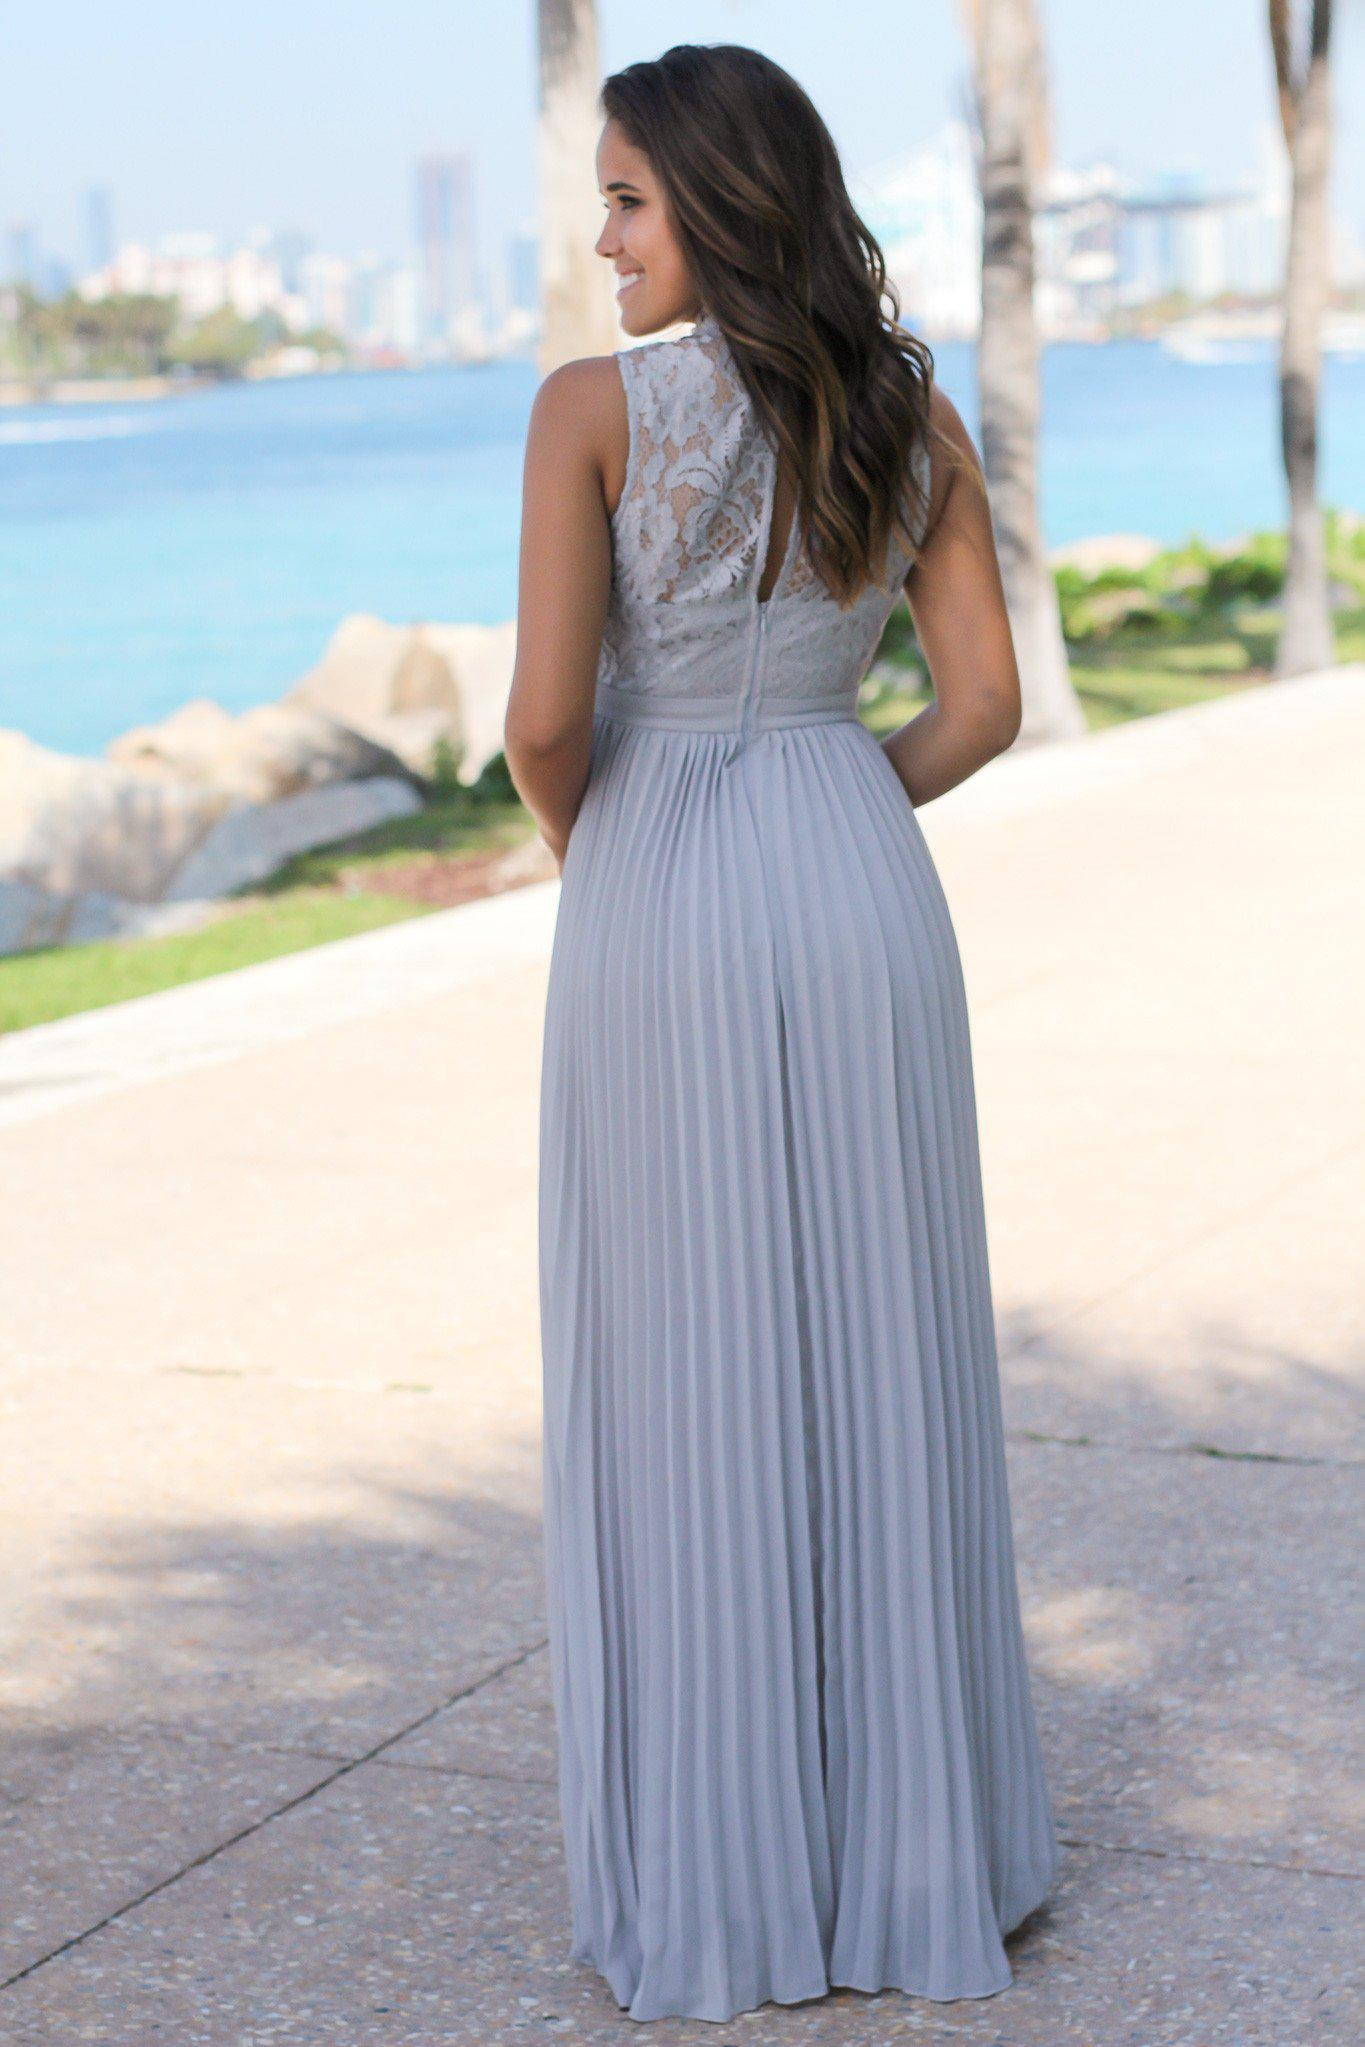 Gray Lace Maxi Dress with Pleated Skirt